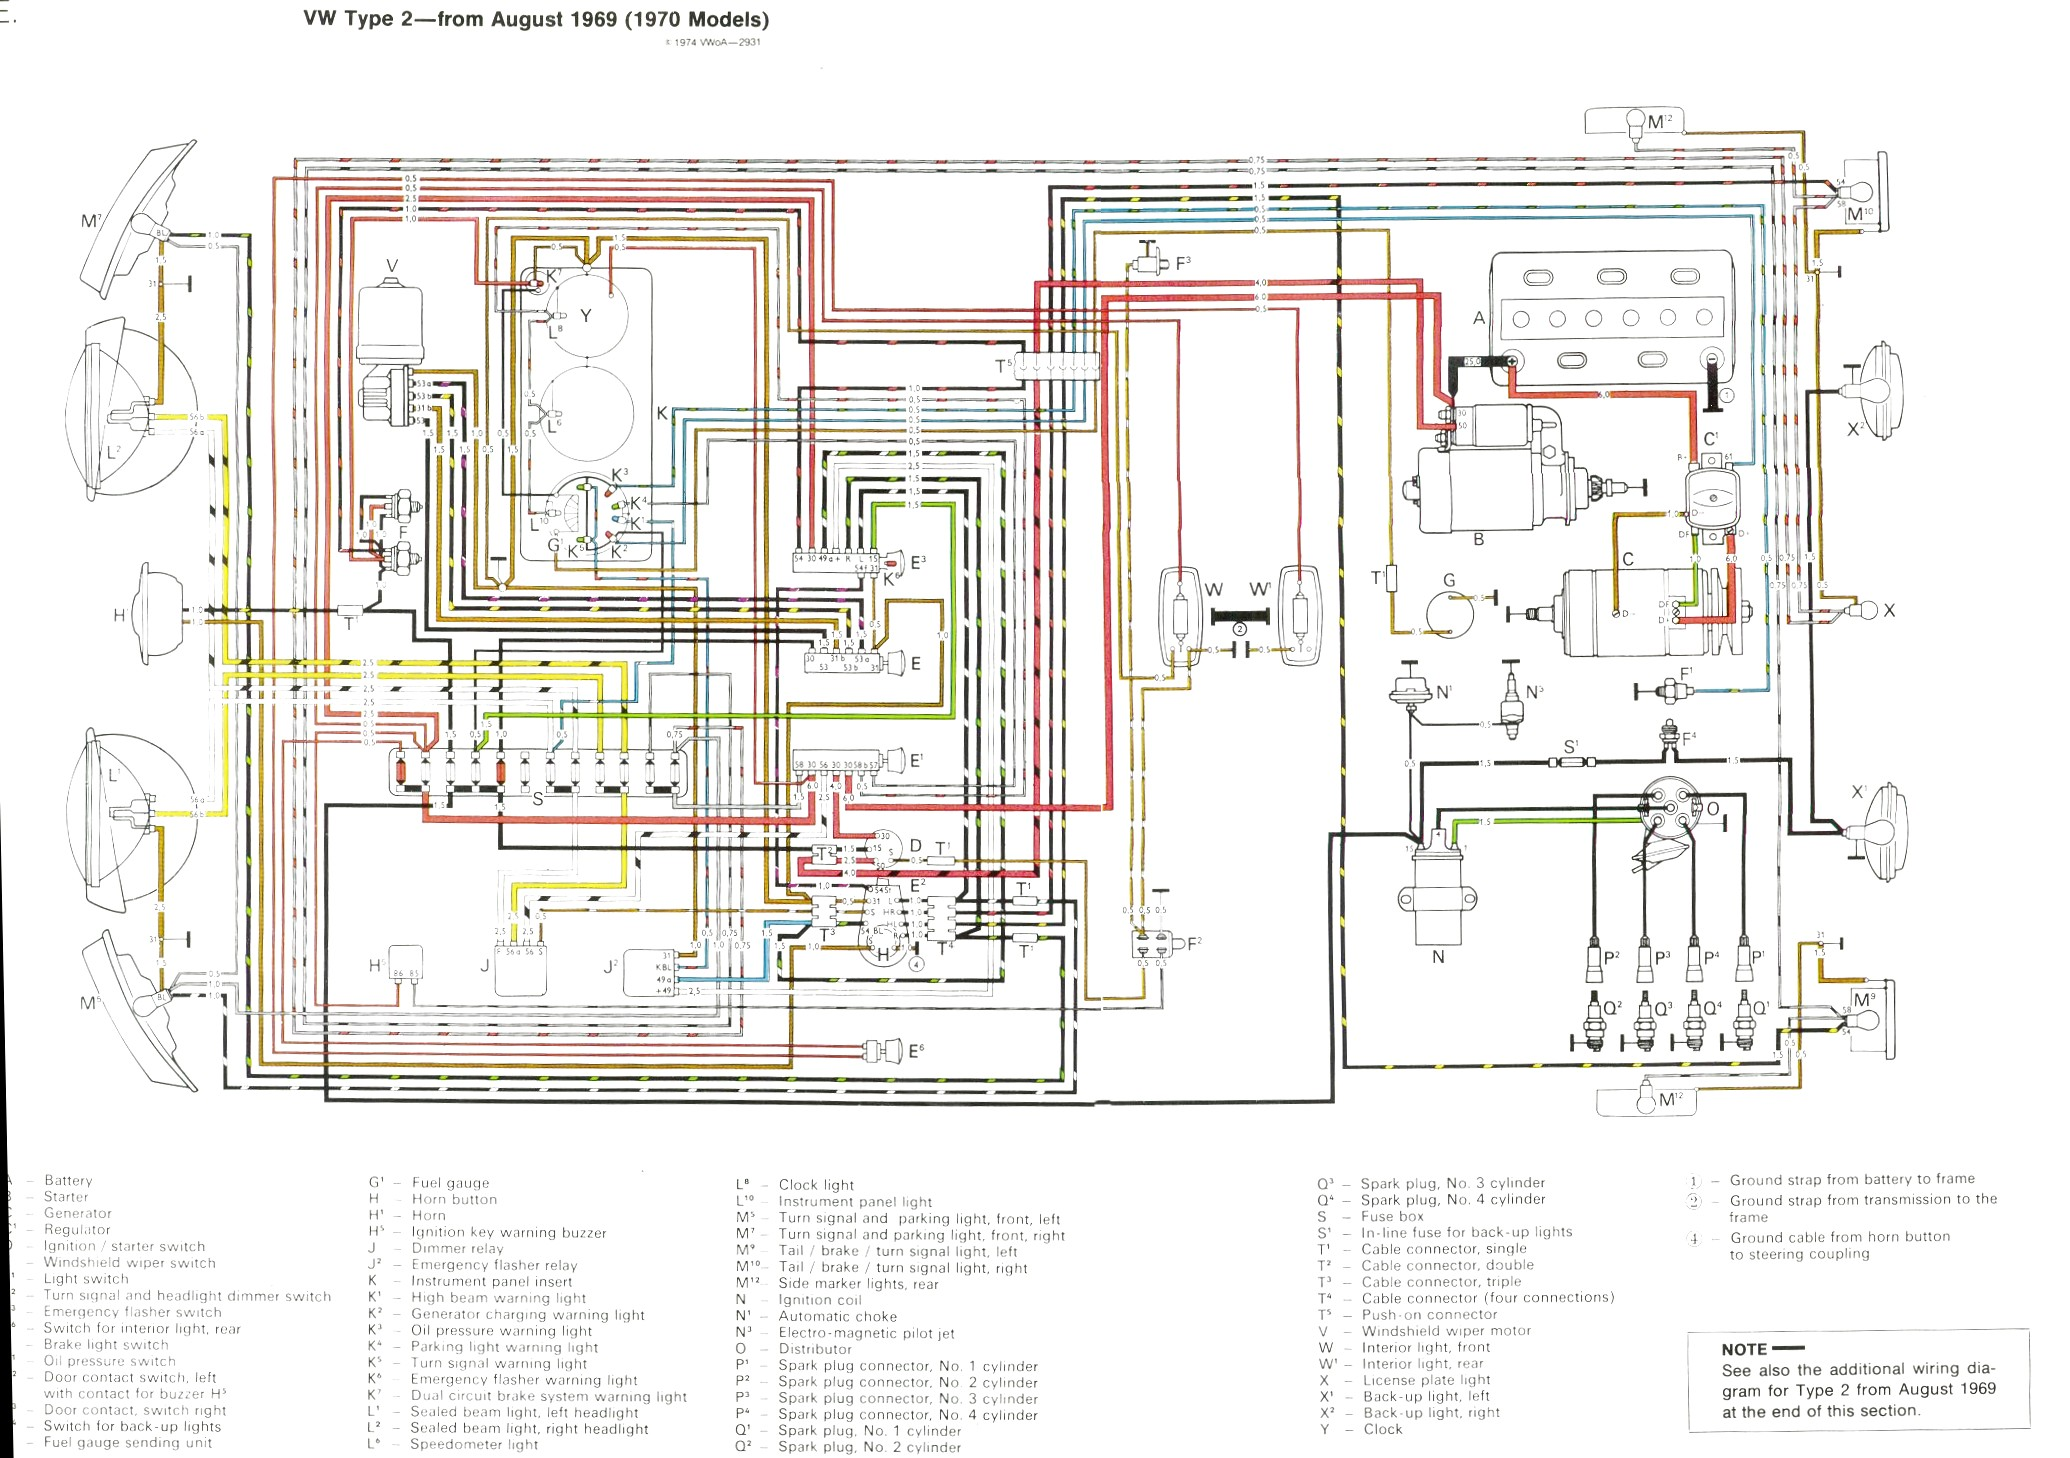 bus 69 70 baywindow fusebox layout 1971 vw bus wiring diagram at mr168.co